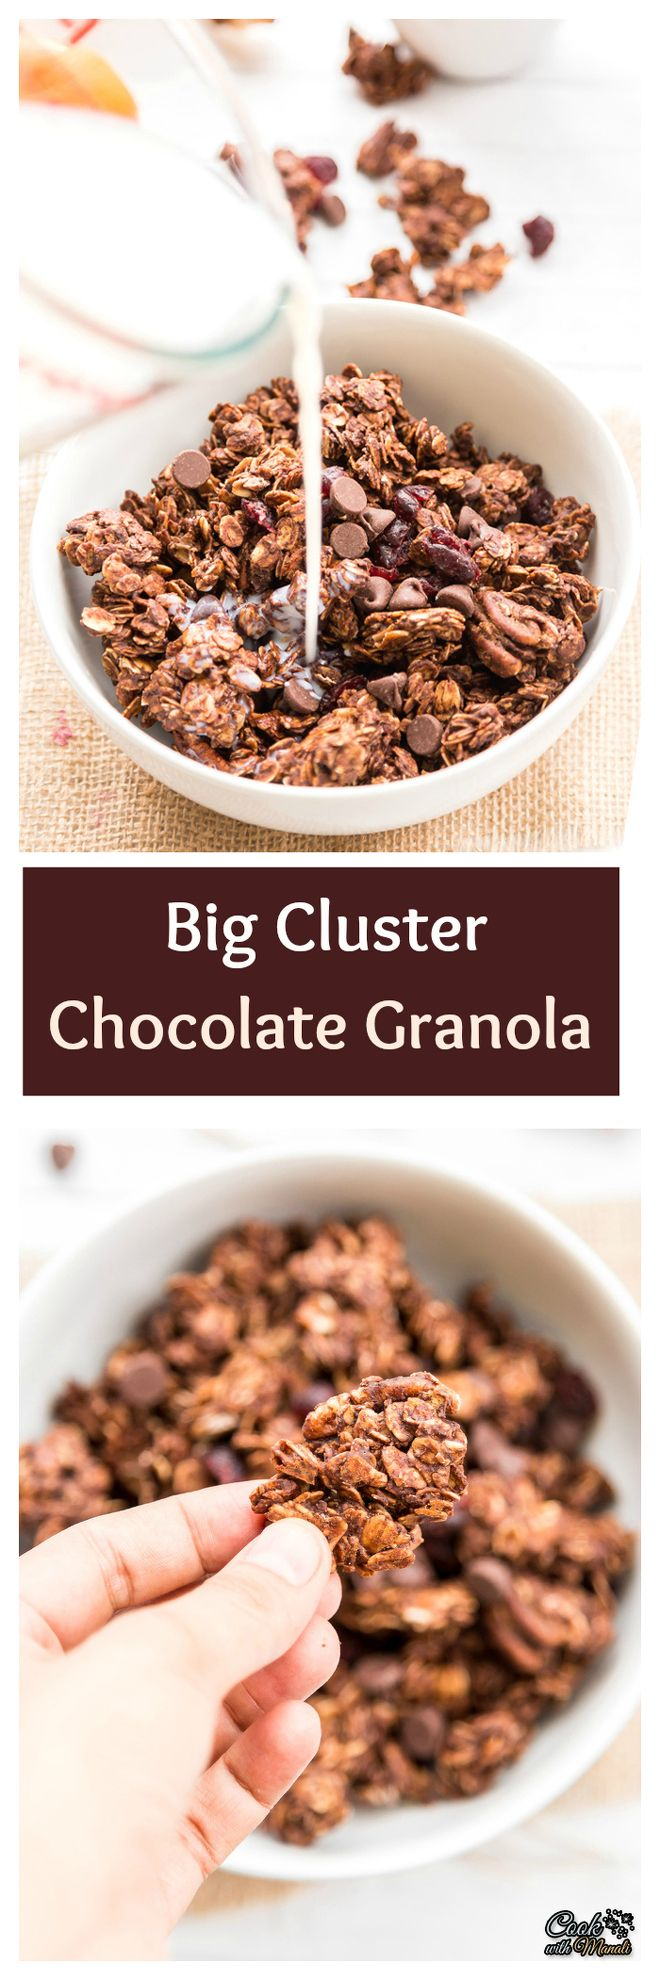 Really big Cluster Chocolate Granola is perfect to snack on! Find the recipe on www.cookwithmanali.com